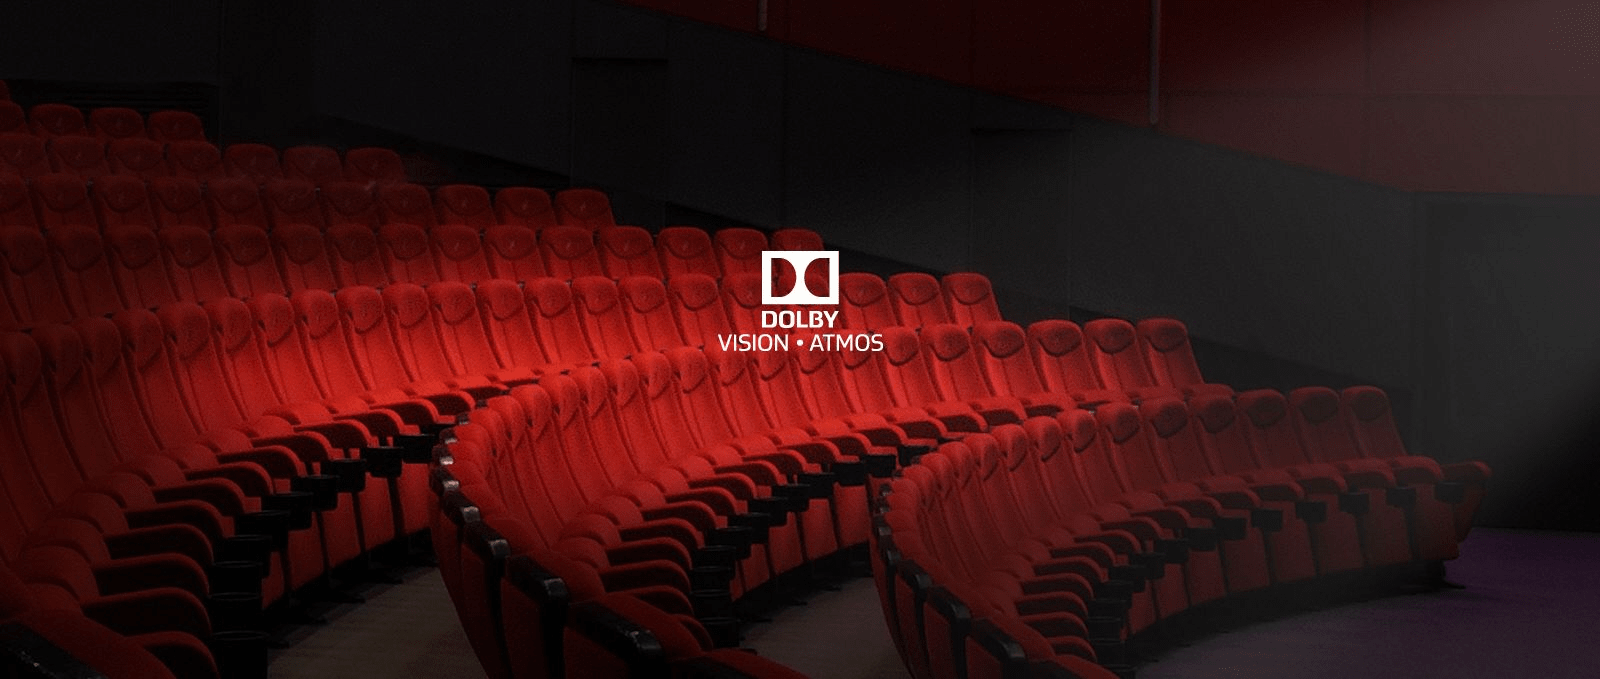 Dolby_vision+atmos